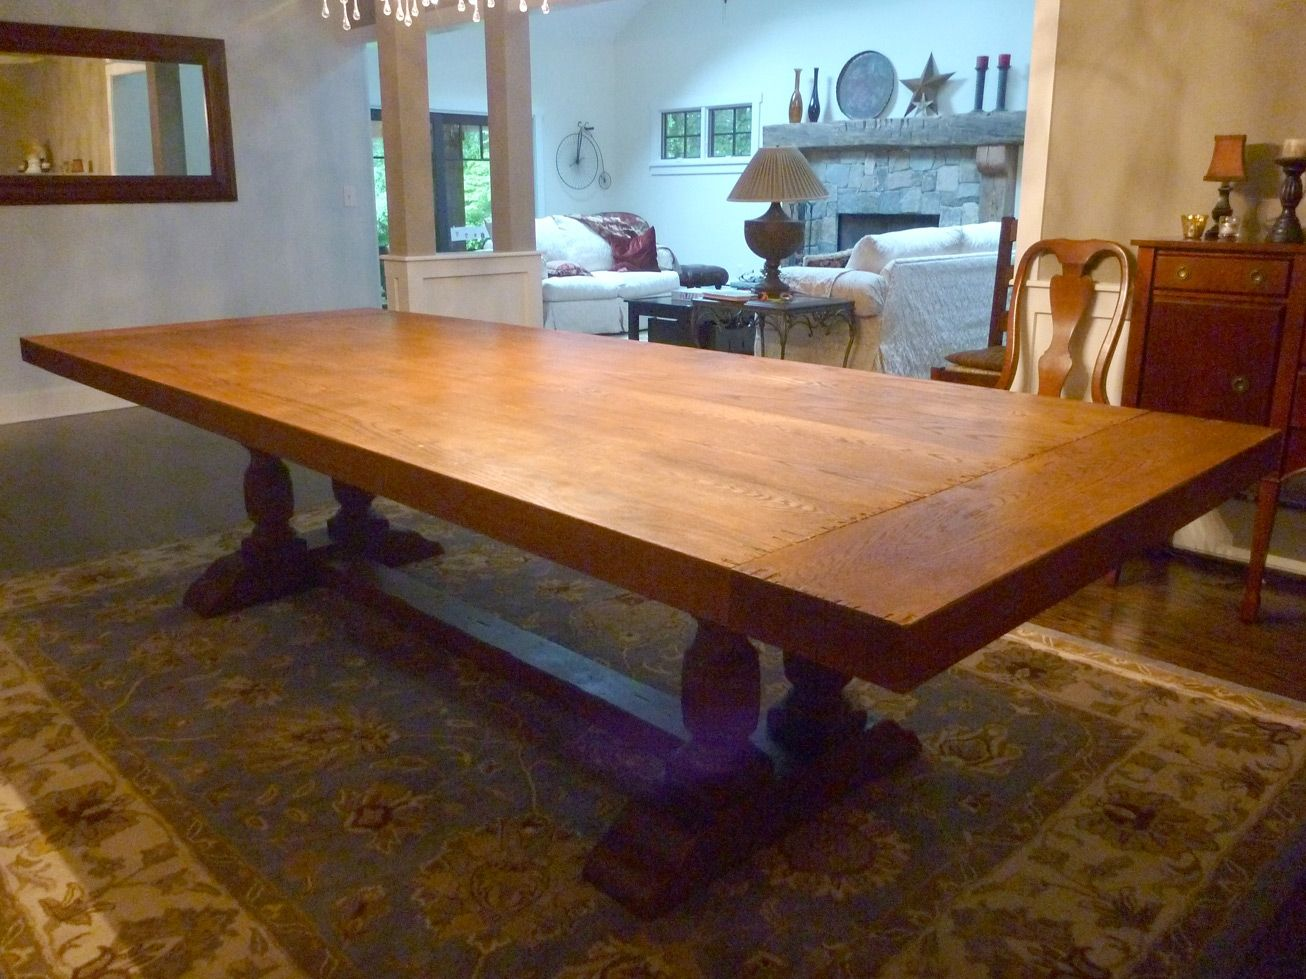 hand crafted dining room table top by ajc woodworking. Black Bedroom Furniture Sets. Home Design Ideas